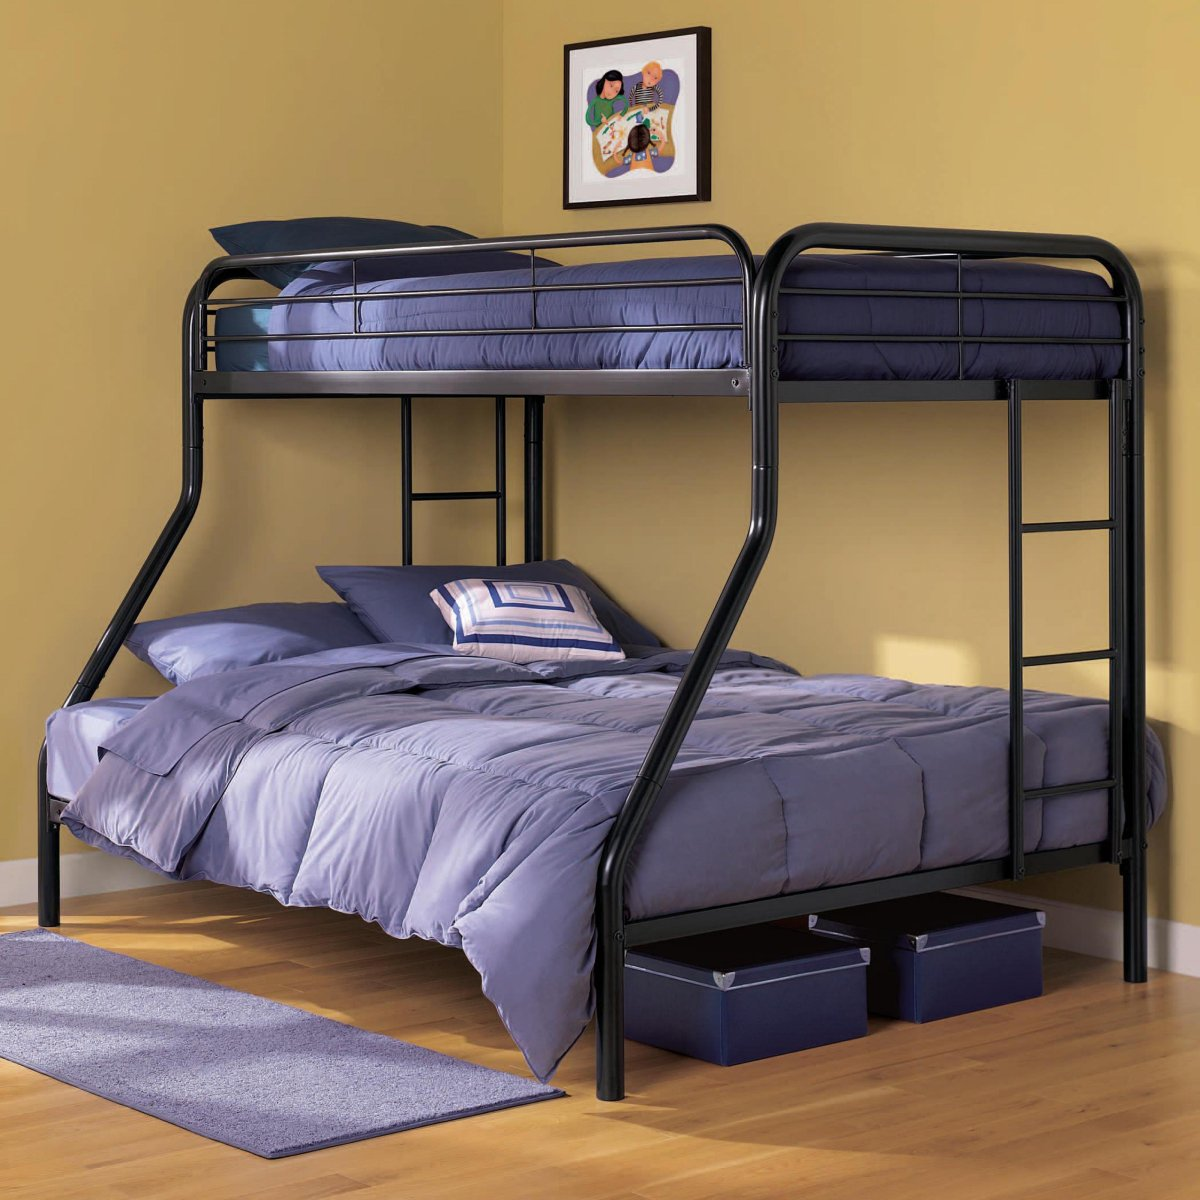 Image of: Bunk Bed Set Size